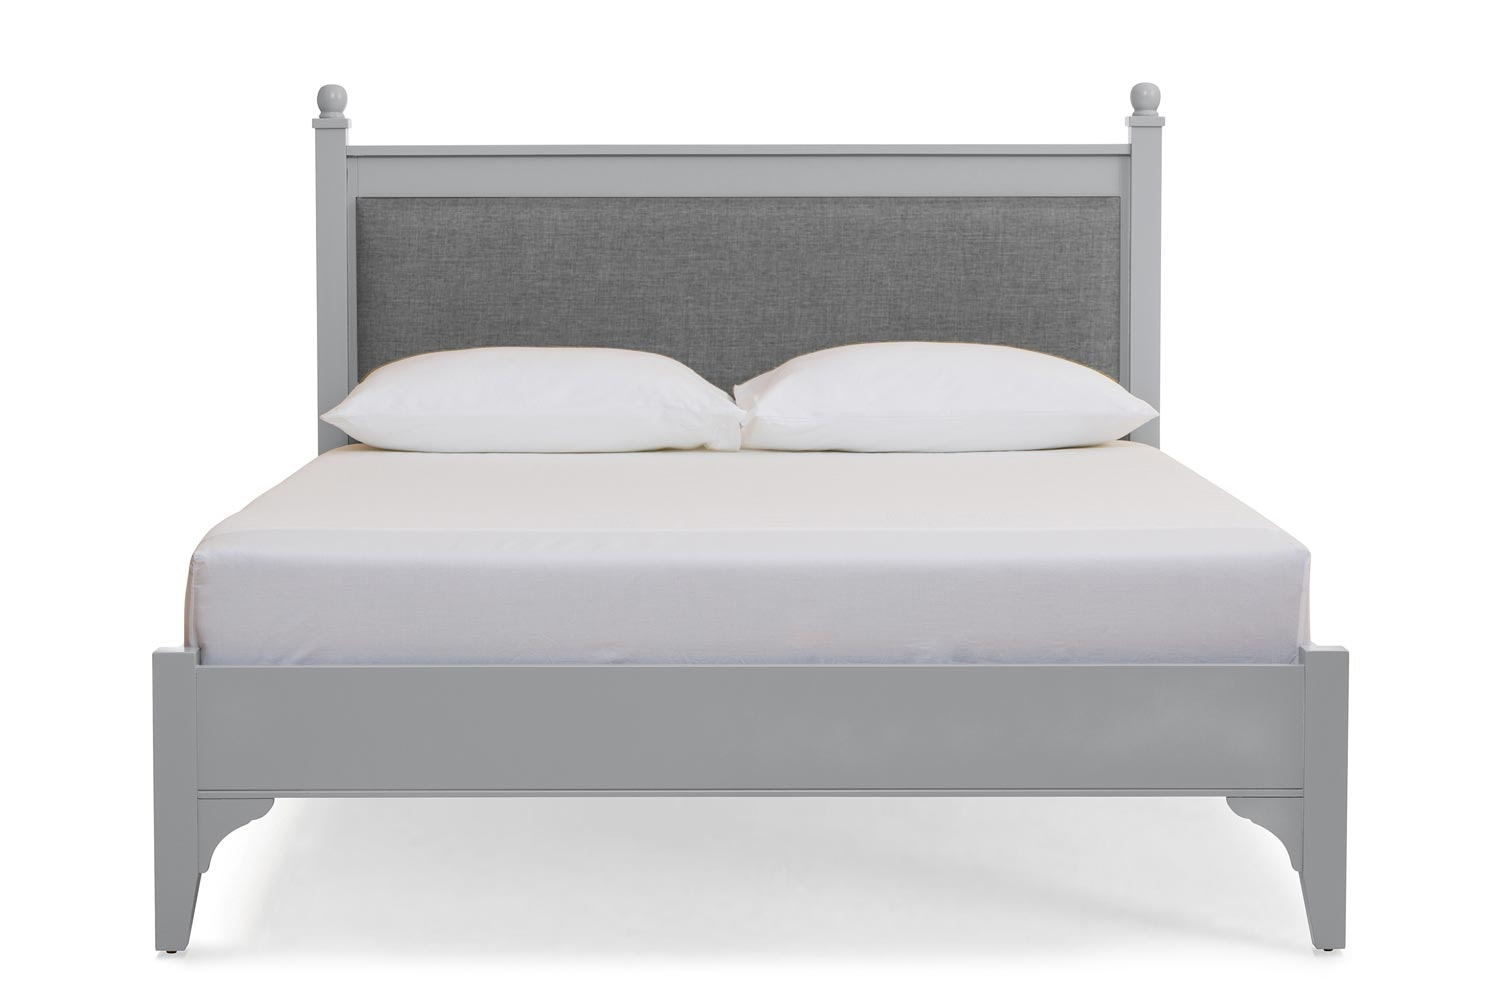 Lynwood Bed Frame | 4ft6 | Colourtrend with Fabric options